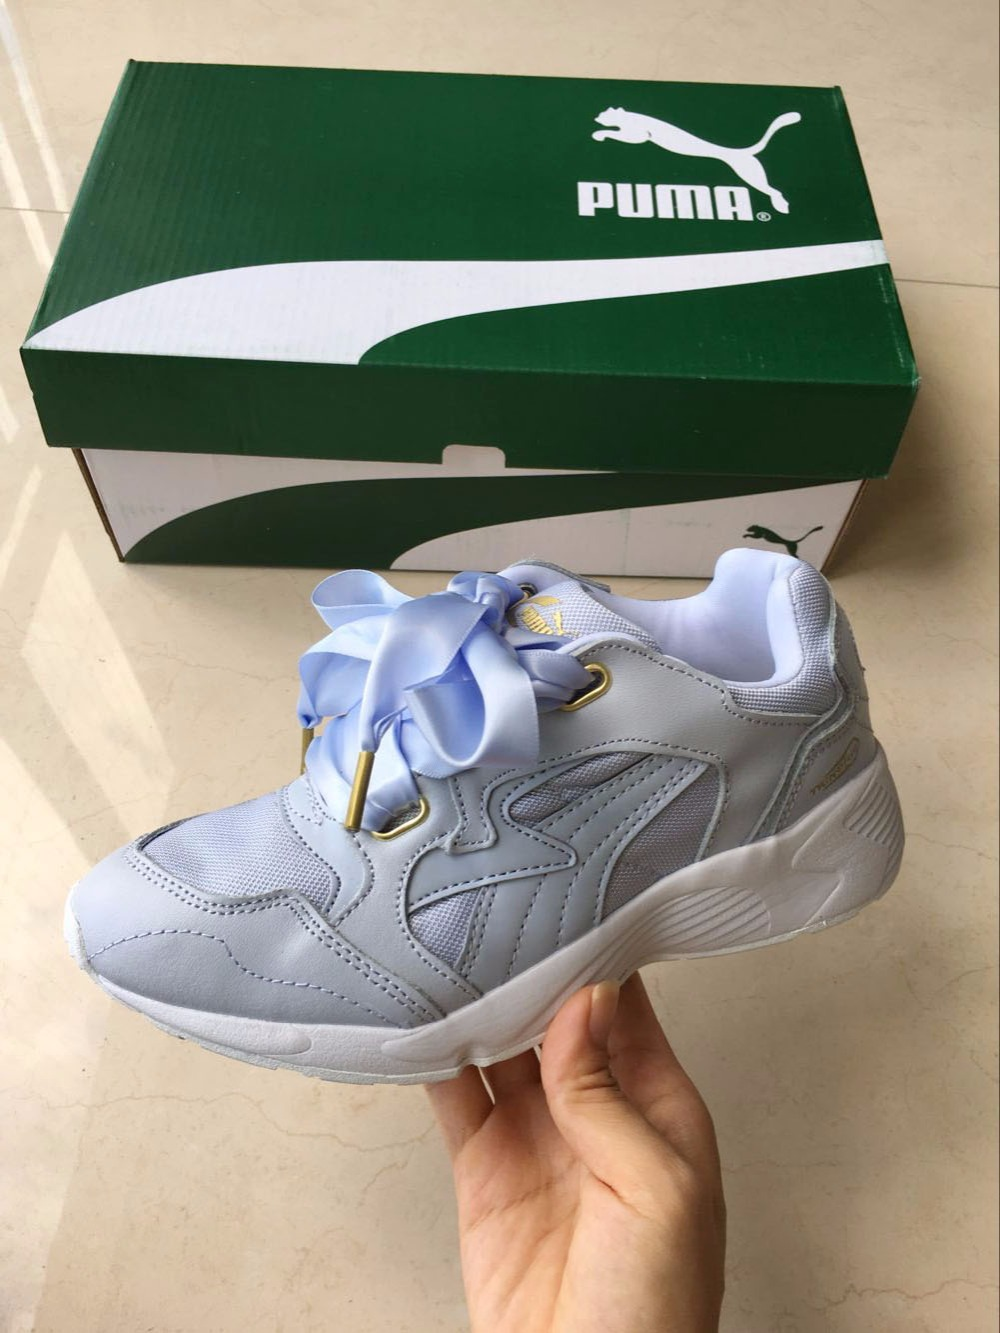 cb3112e97b1 New Arrival 2017 PUMA PUMA Prevail Heart Women s shoes Breathable Sneakers  Badminton Shoes-in Badminton Shoes from Sports   Entertainment on  Aliexpress.com ...